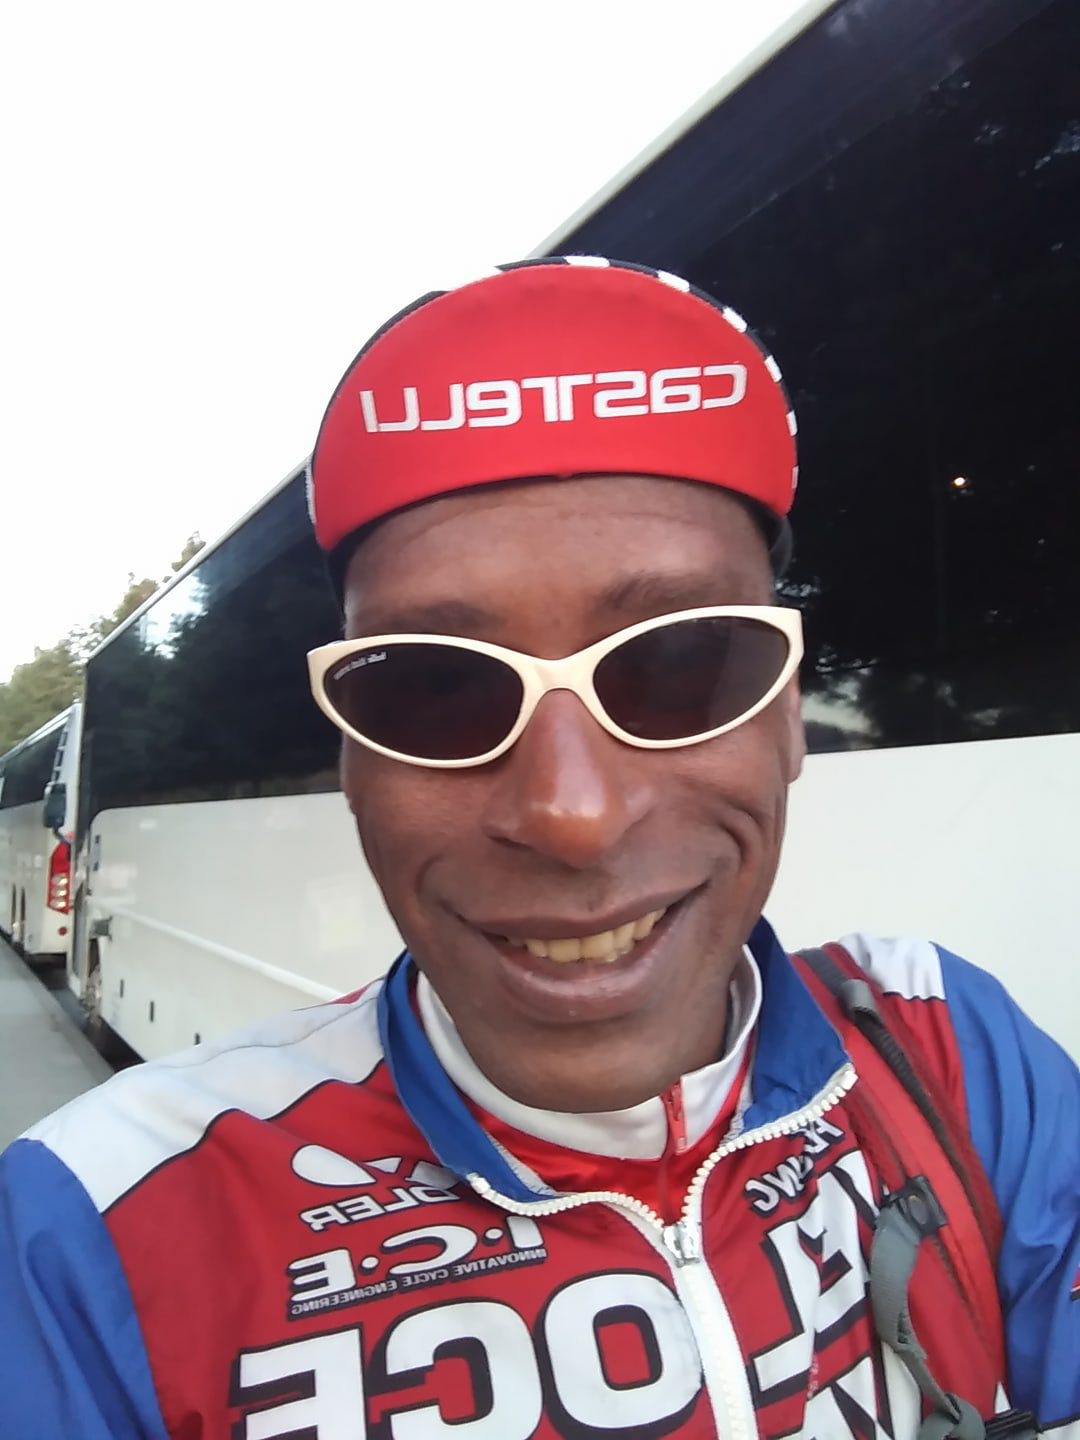 AIDSLIFECYCLE 2017 RIDER SMILING